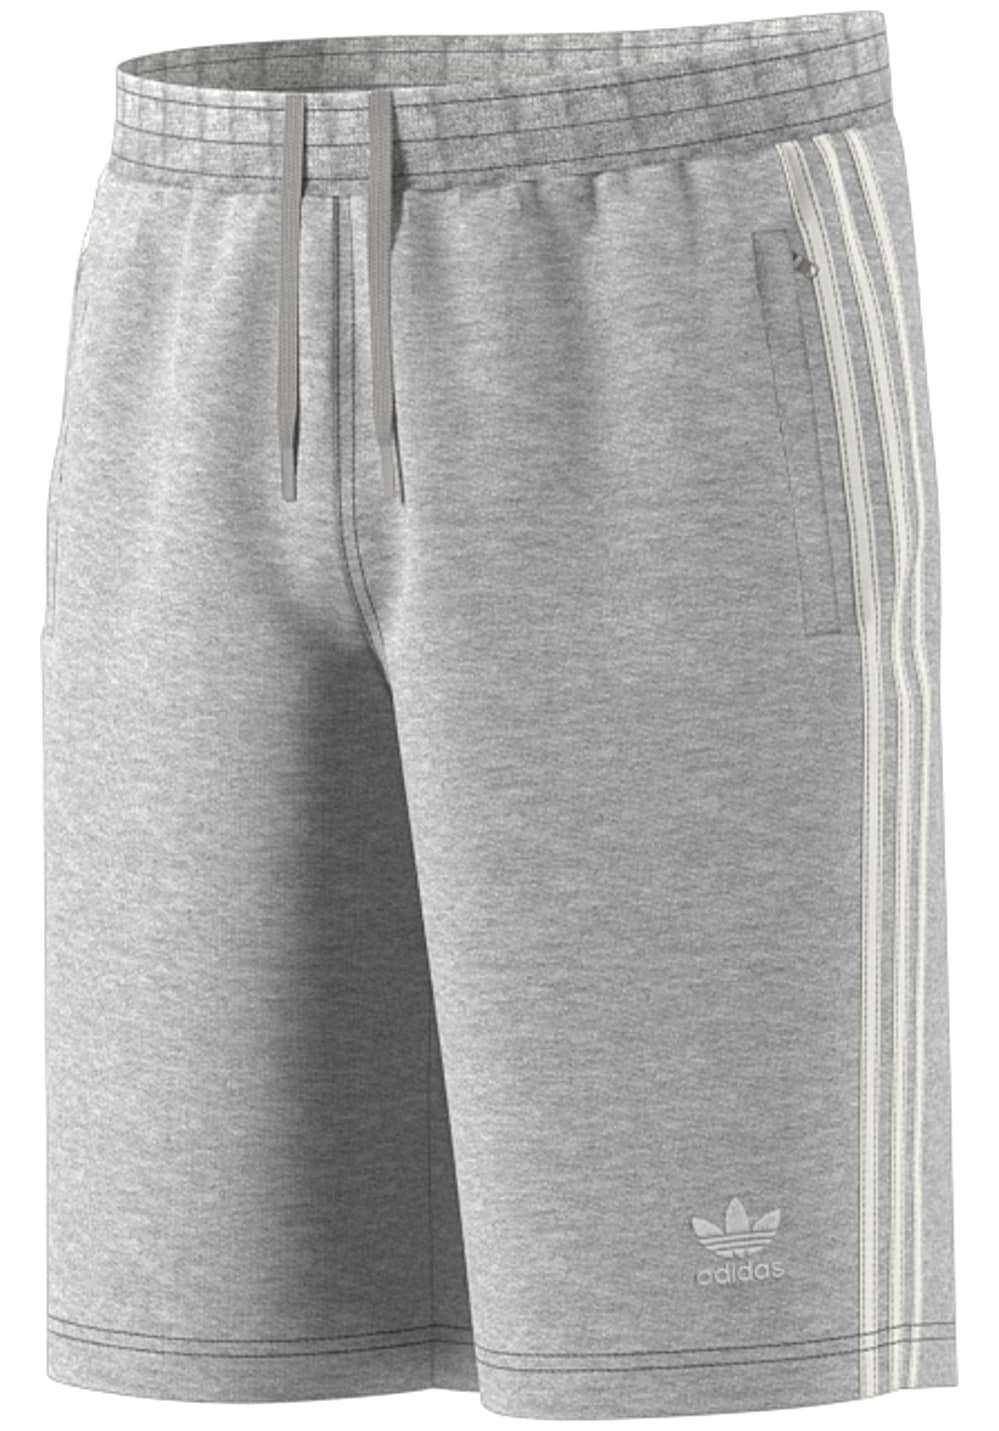 adidas Originals 3 Stripe Shorts für Herren Grau